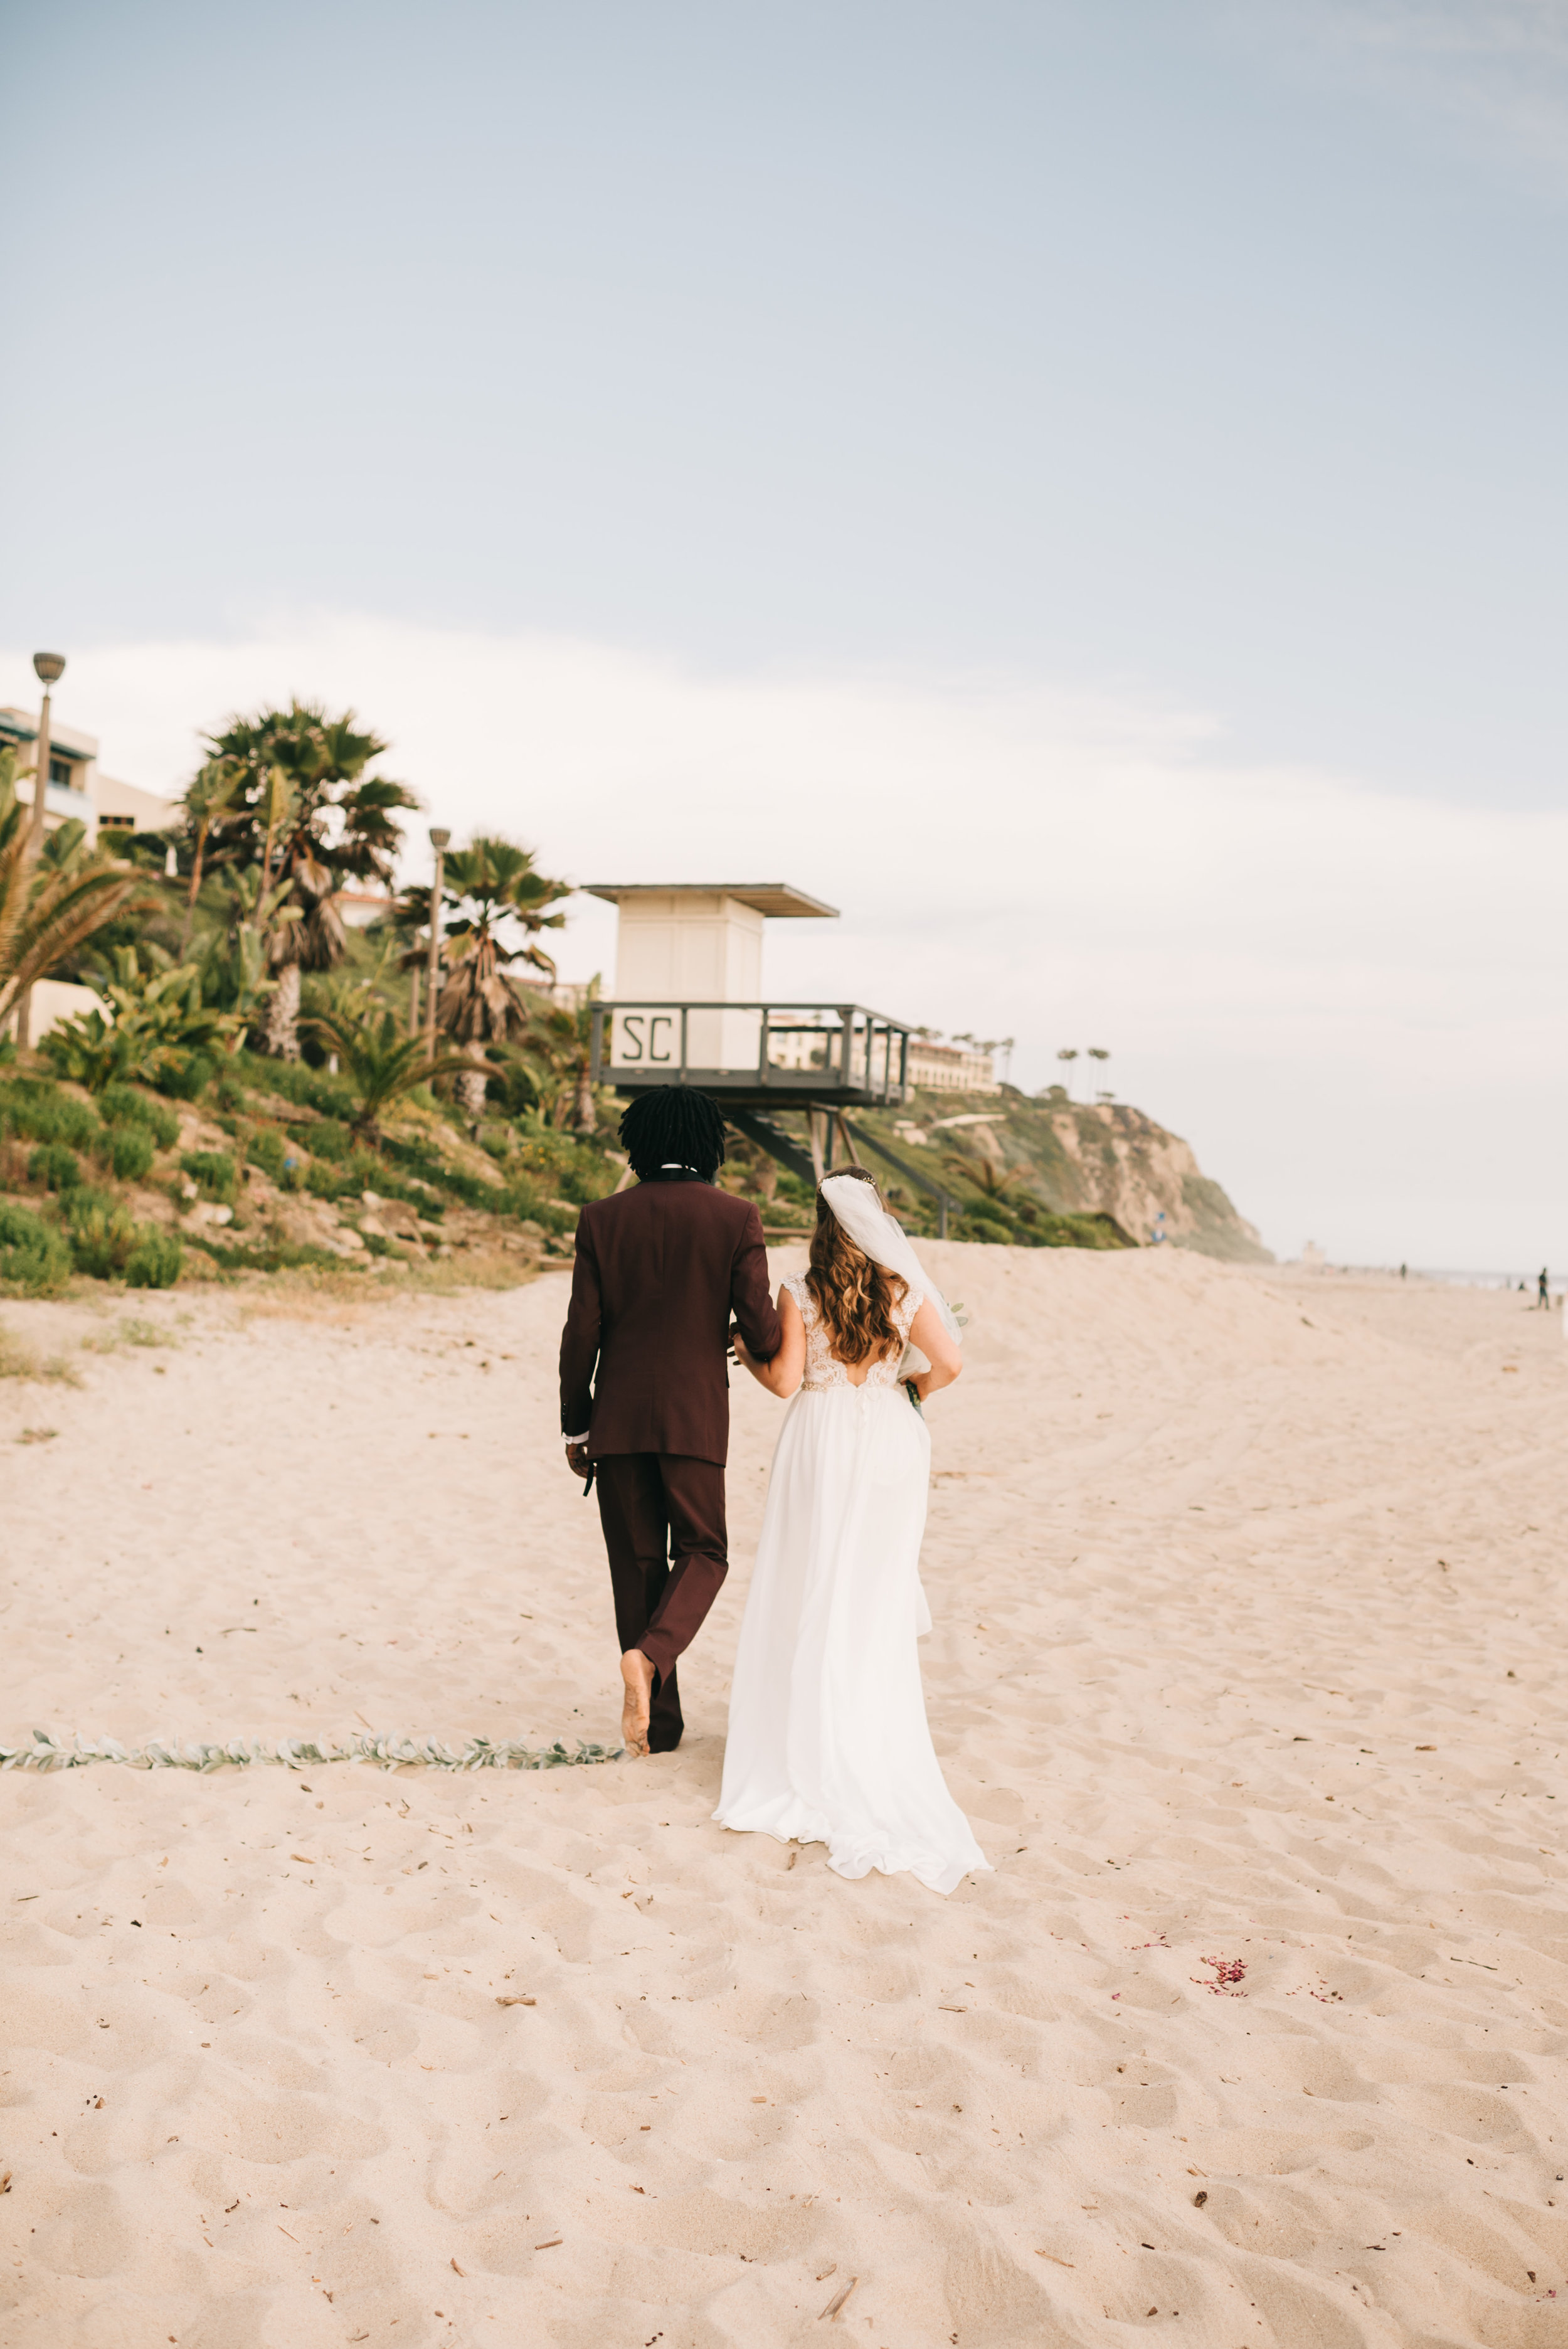 southern california laguna beach salt creek beach los angeles socal boho bay area akland san francisco engagement wedding nontraditional fun creative eclectic photographer magic-629.jpg